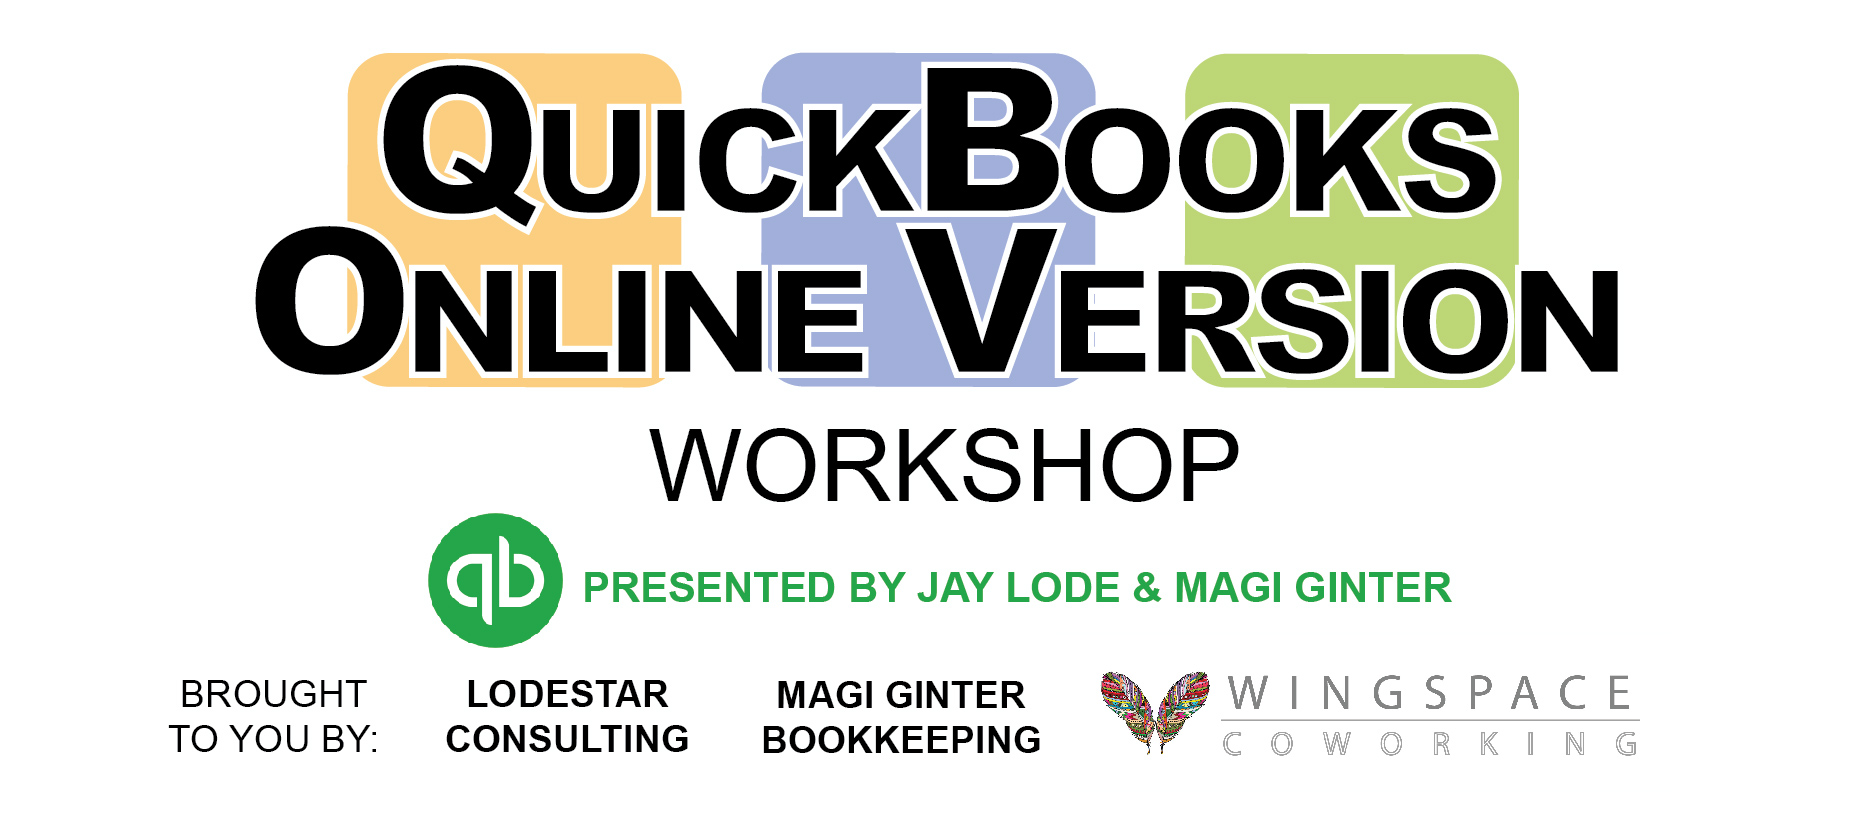 QB ONLINE WORKSHOP-BANNER.jpg